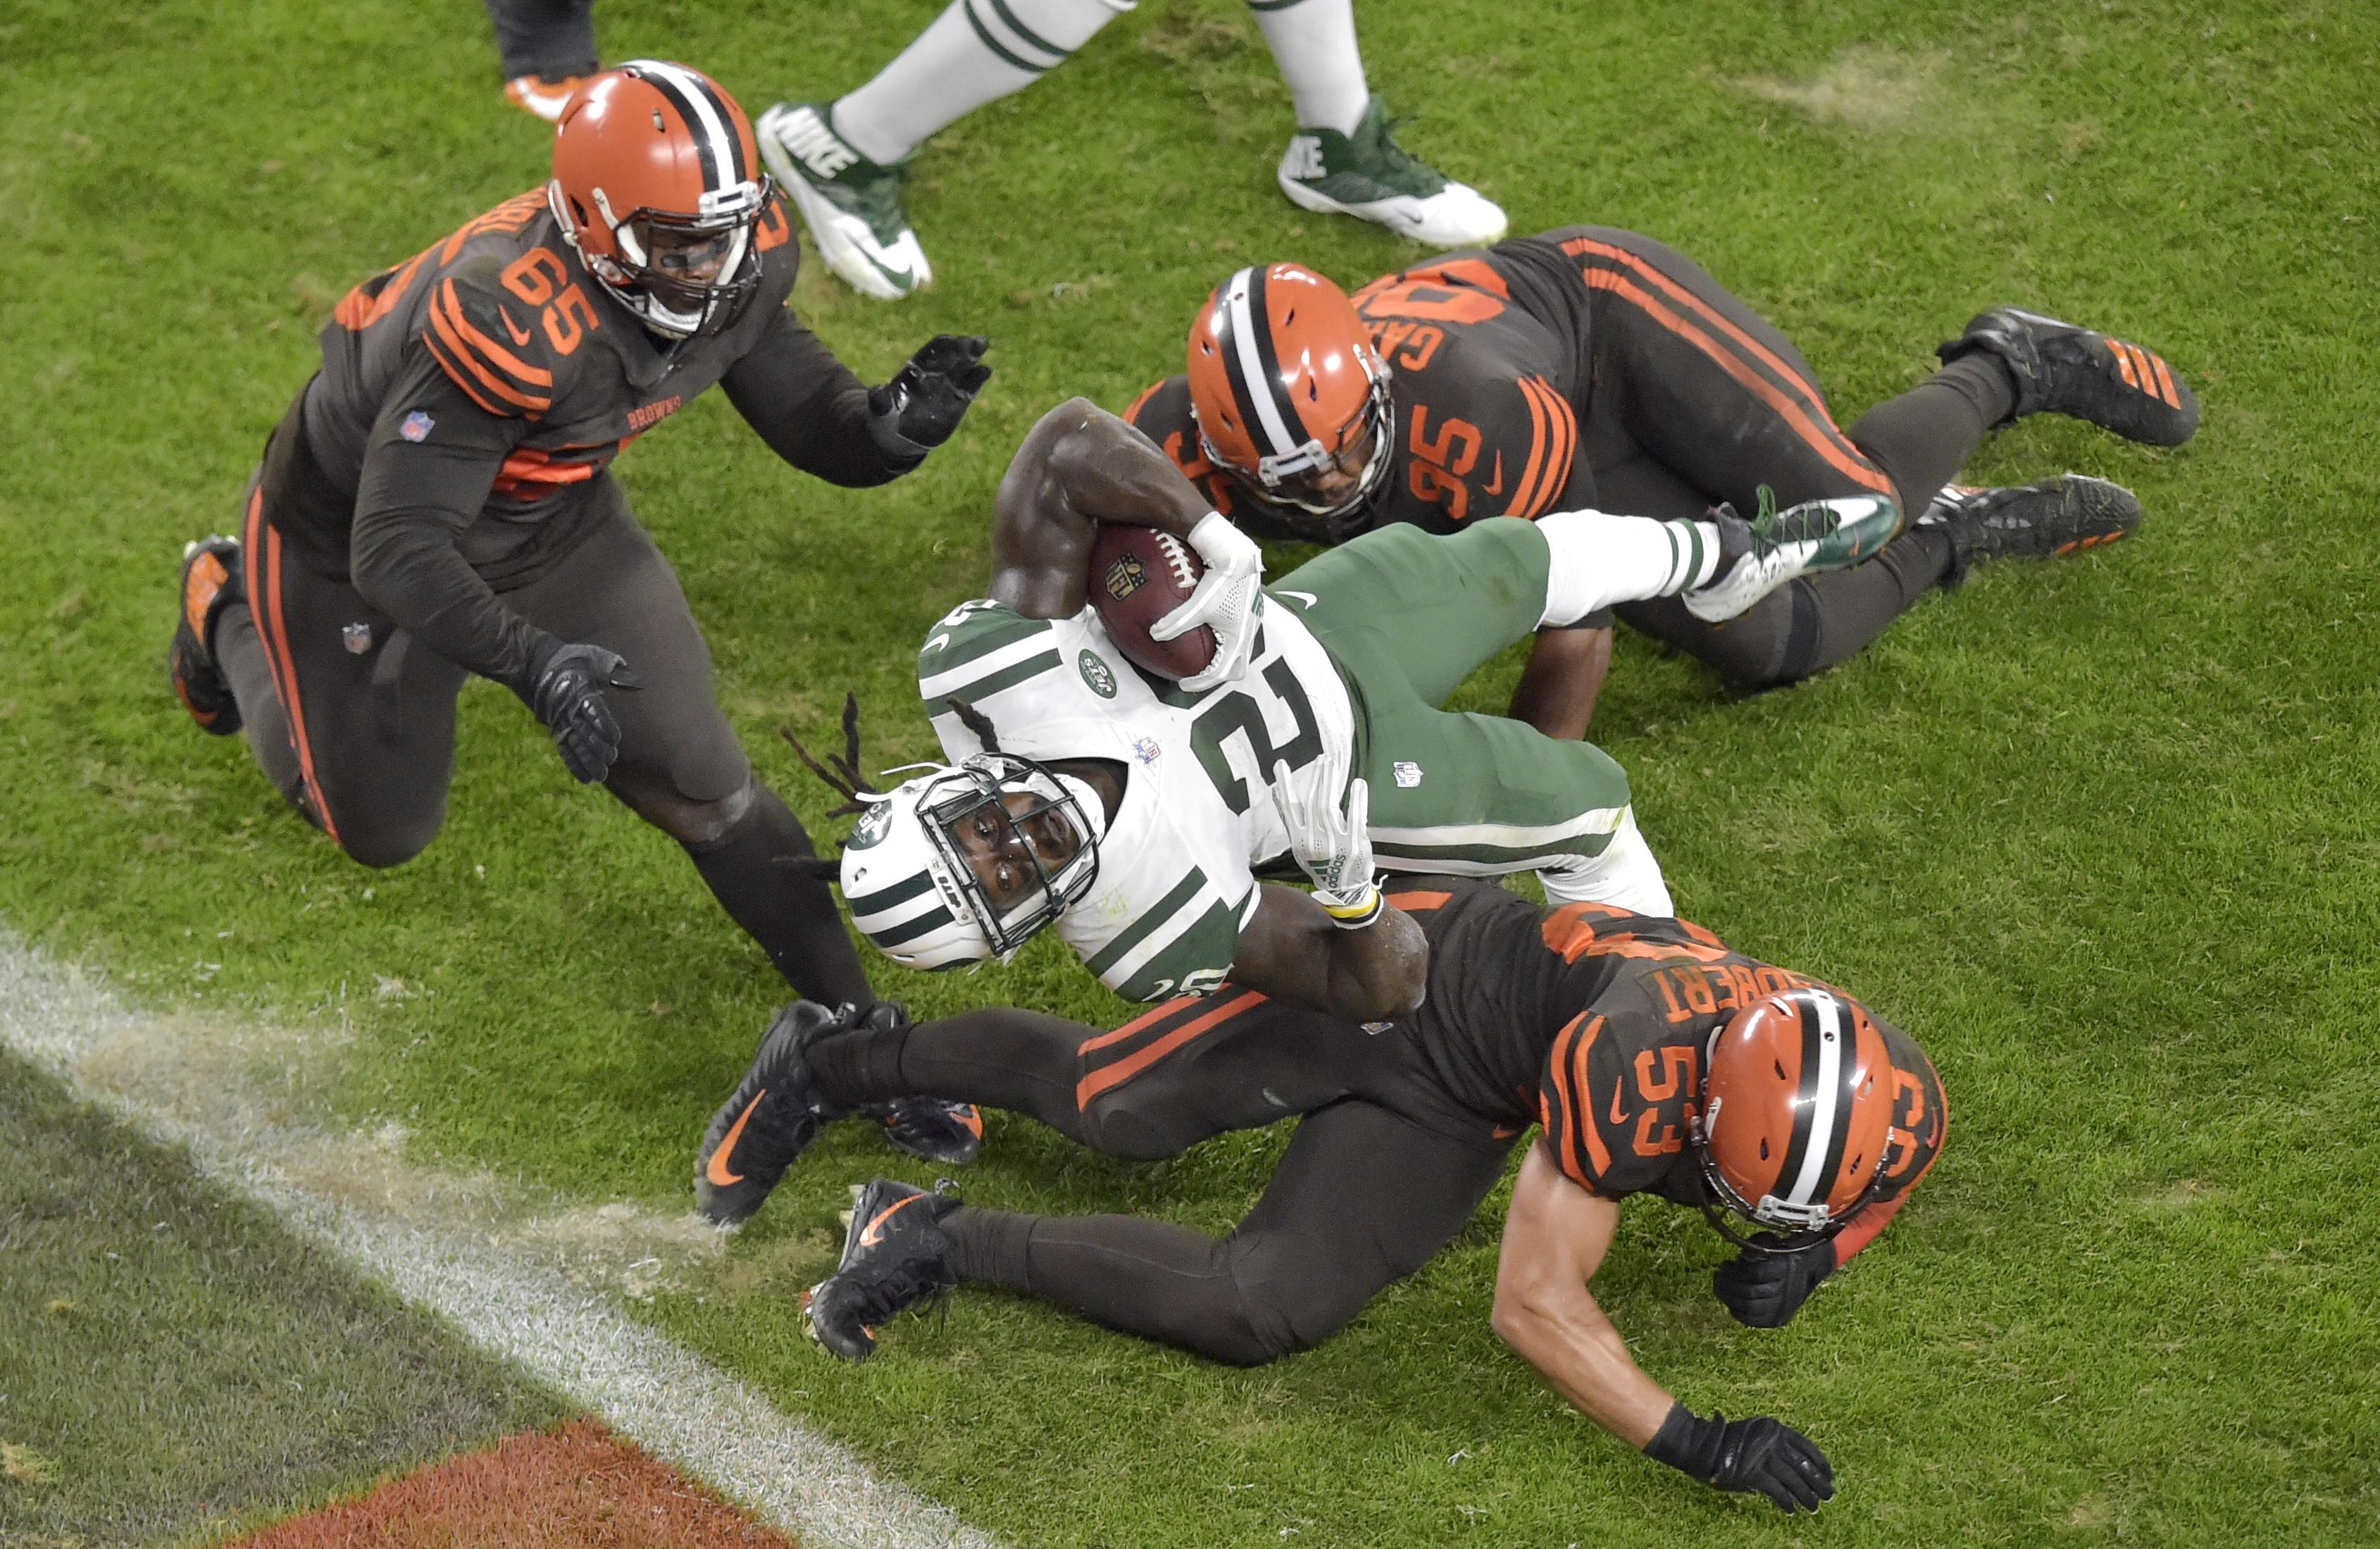 Browns fans were furious at the player, who spent four seasons in Cleveland